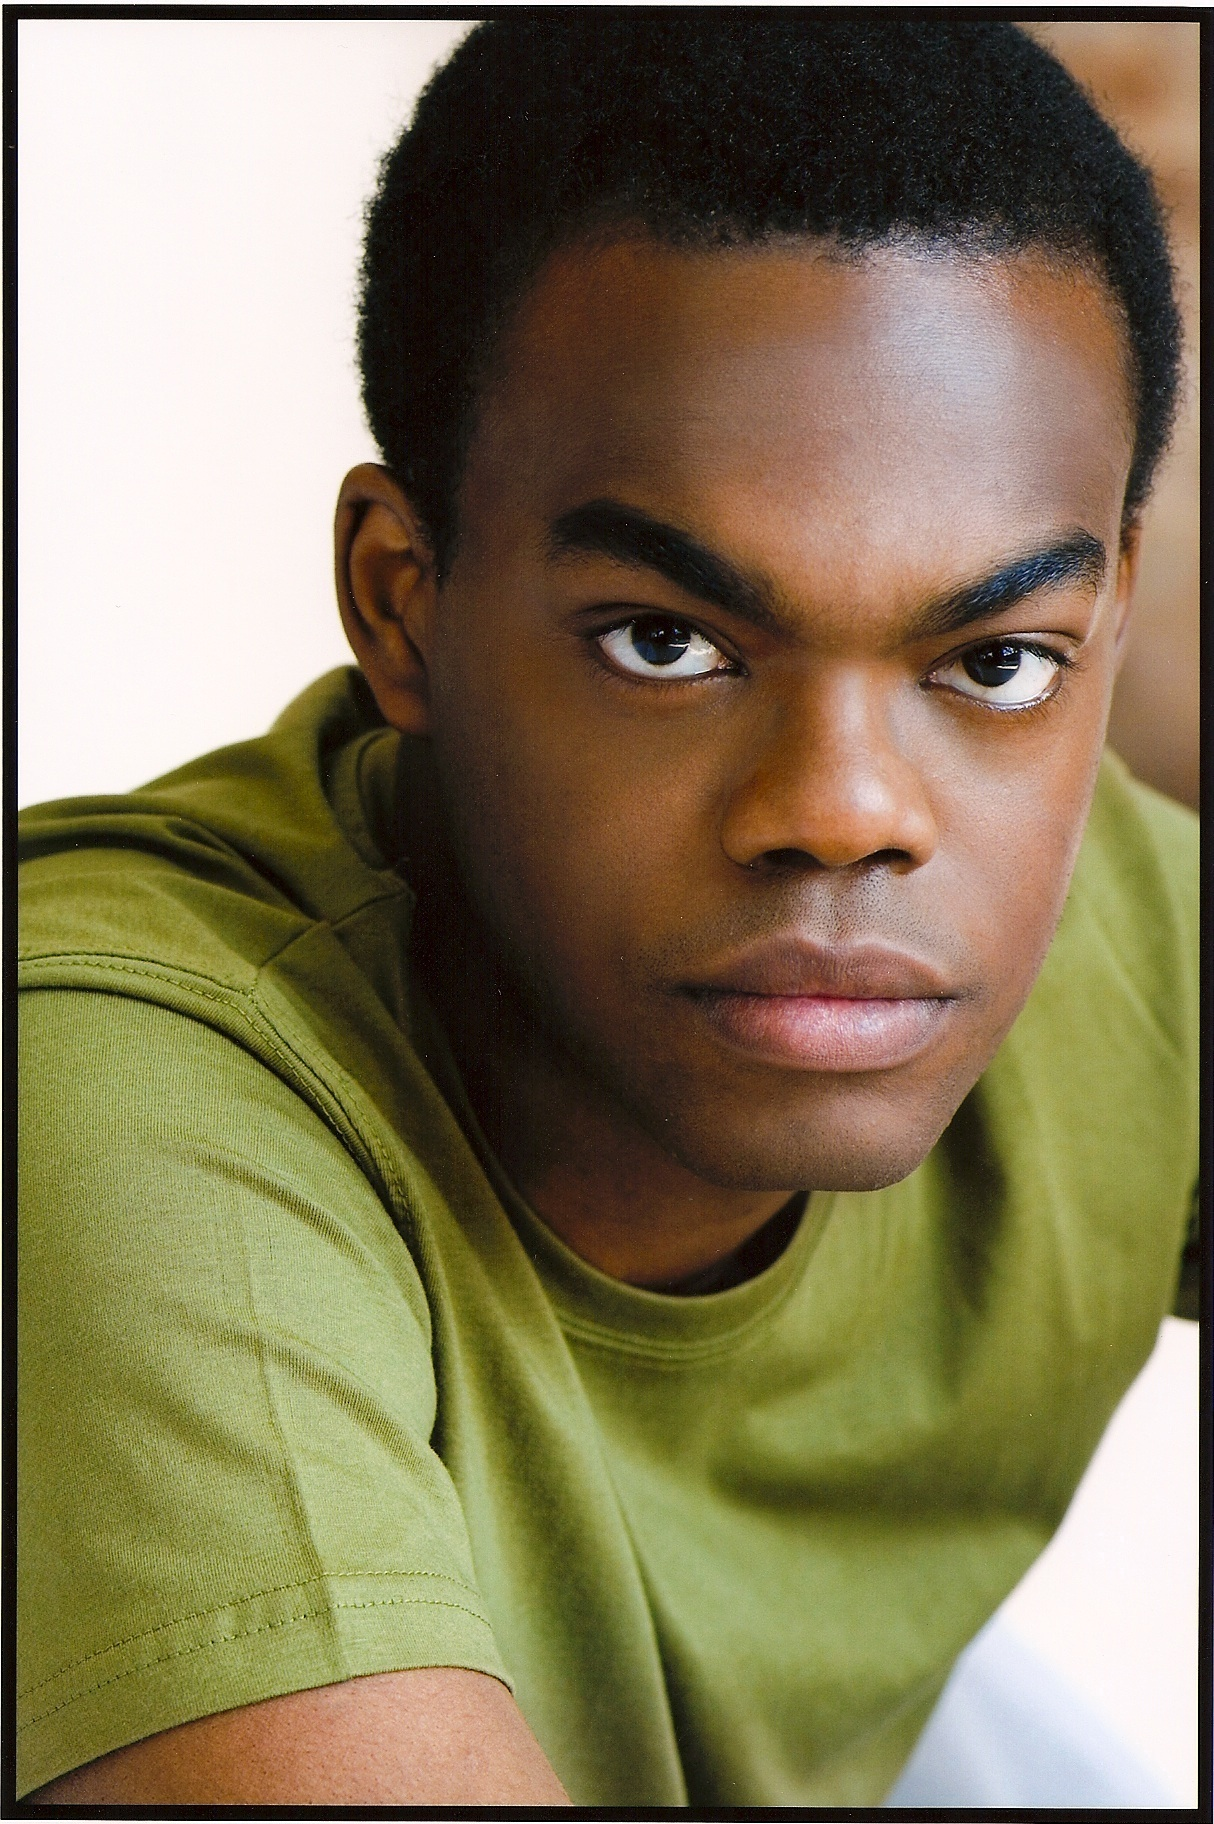 Caption: William Jackson Harper